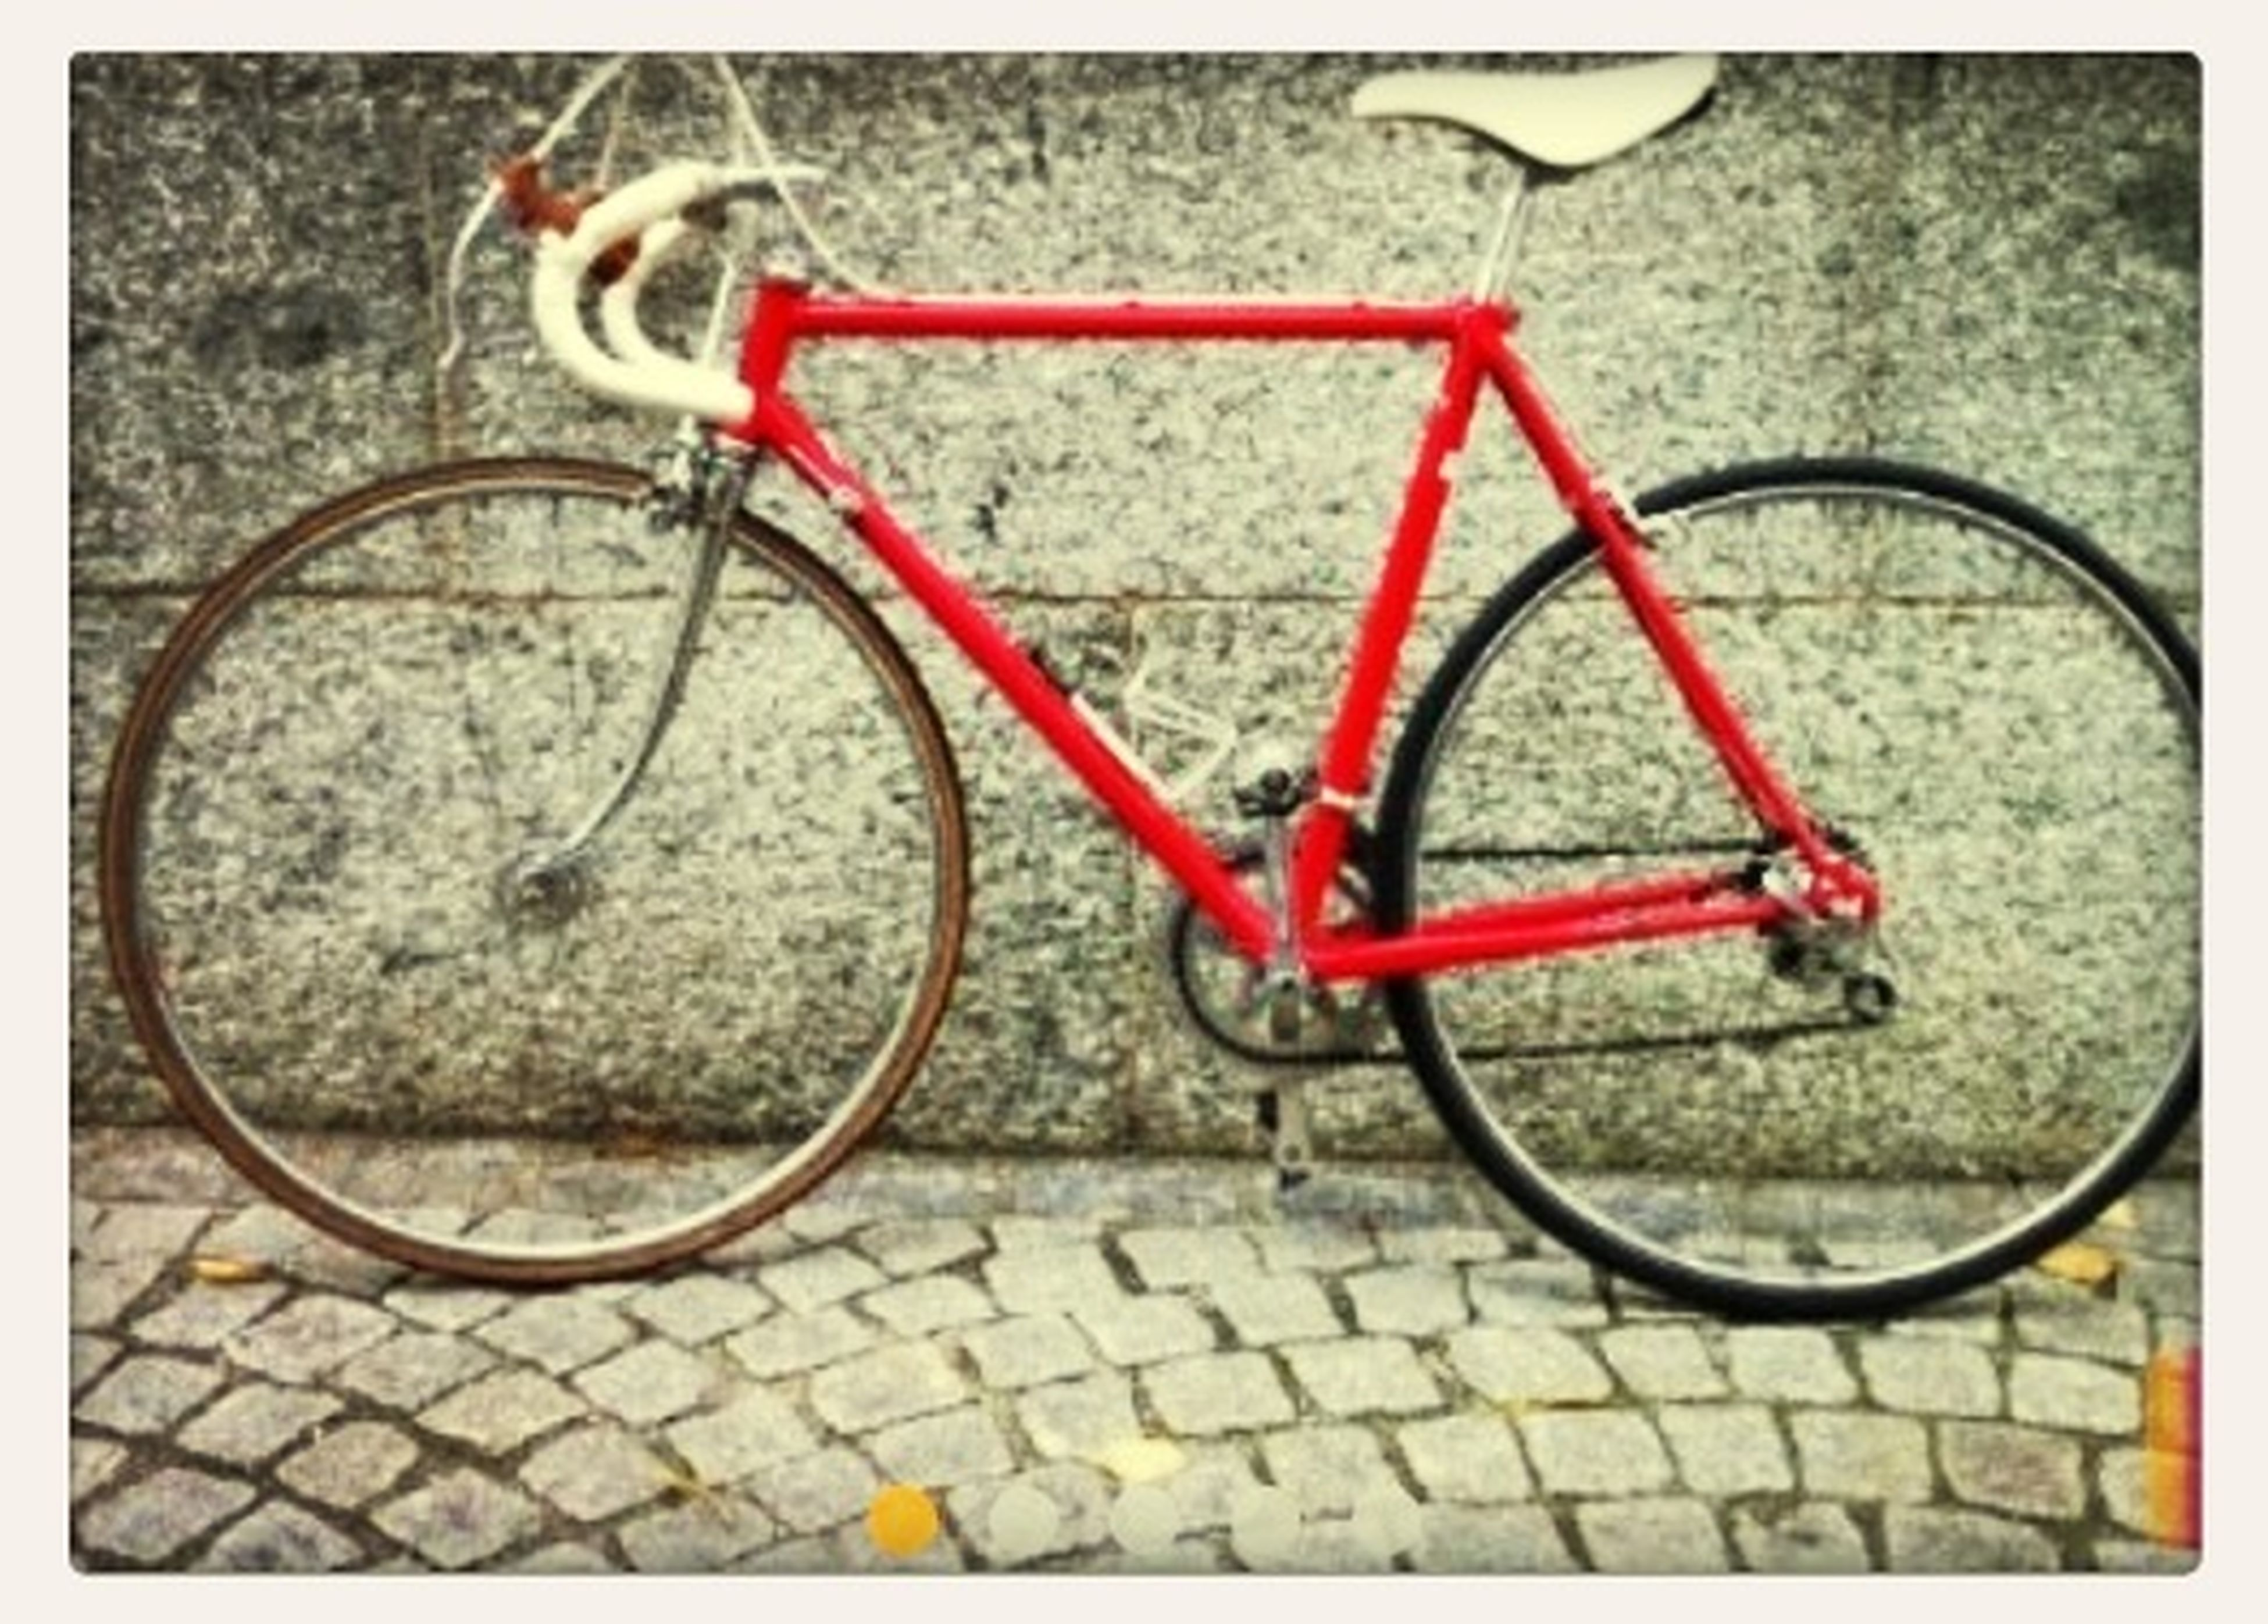 bicycle, transportation, transfer print, mode of transport, stationary, land vehicle, auto post production filter, wheel, parked, parking, metal, street, day, outdoors, no people, cobblestone, red, sidewalk, paving stone, safety